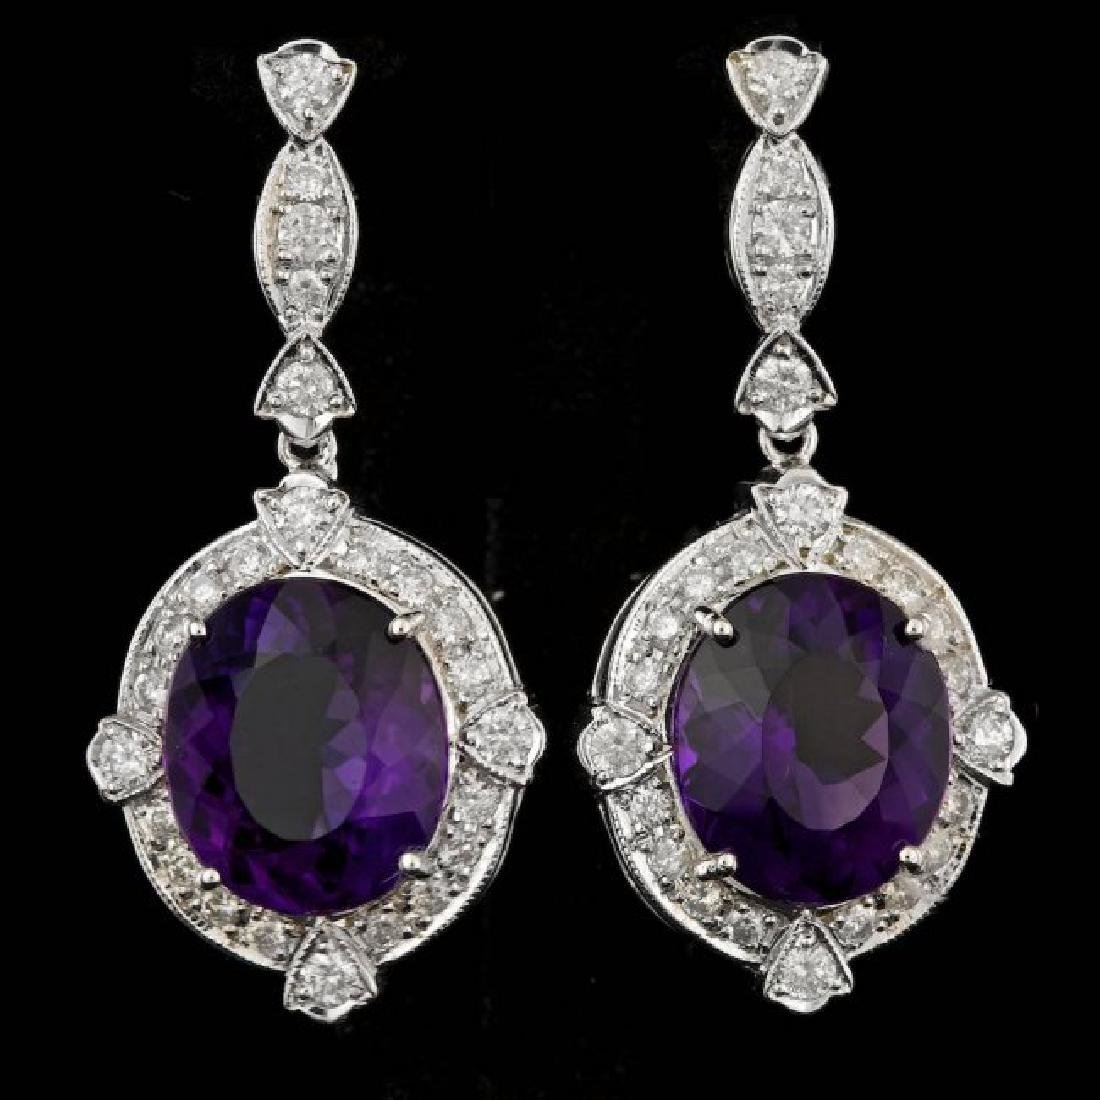 14k Gold 14.50ct Amethyst 1.80ct Diamond Earrings